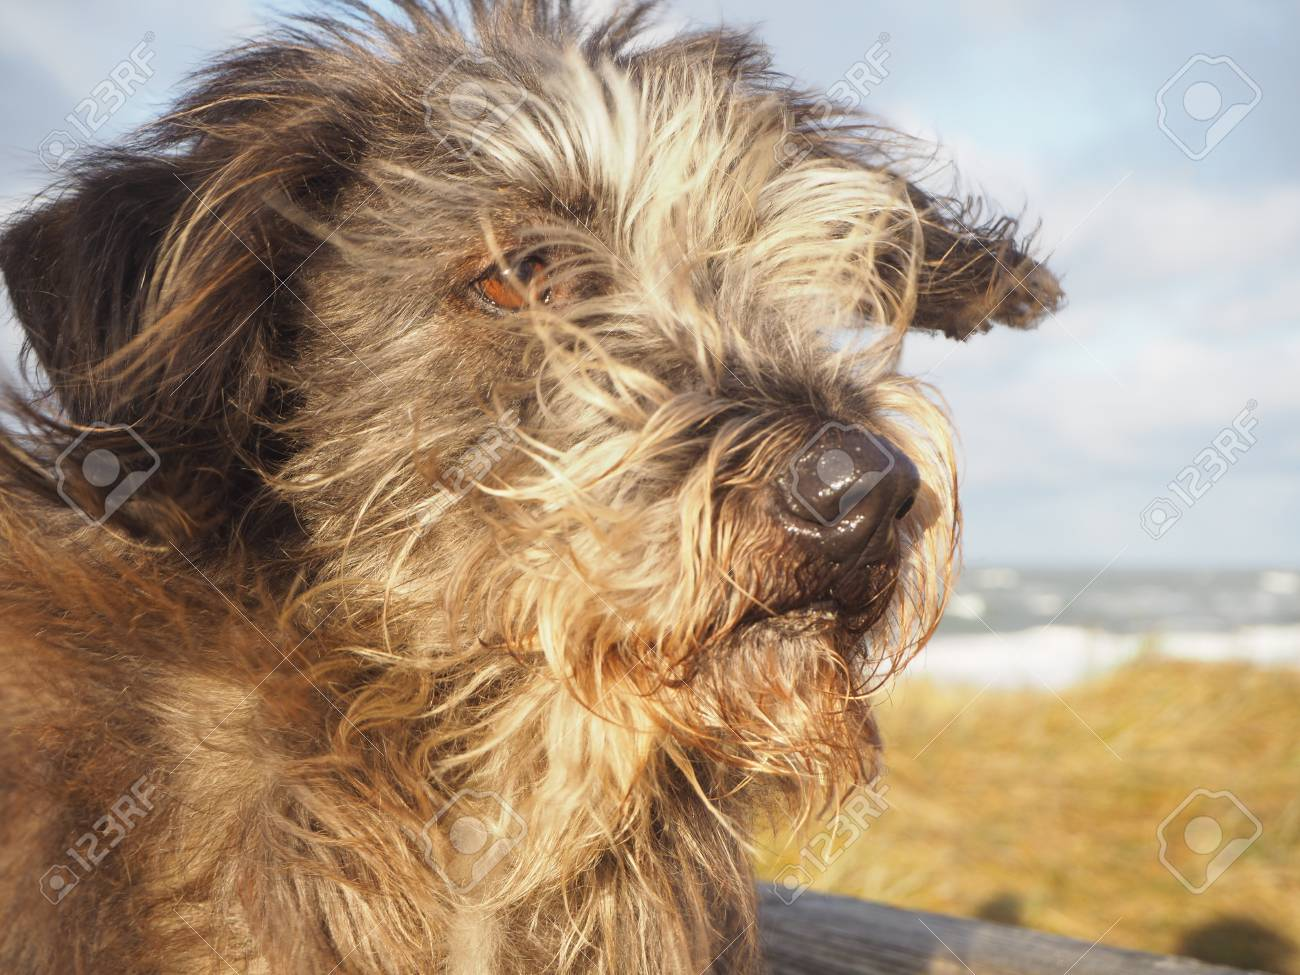 Portrait Of Mixed Breed Long Haired Dog With Hair And Ears Blowing